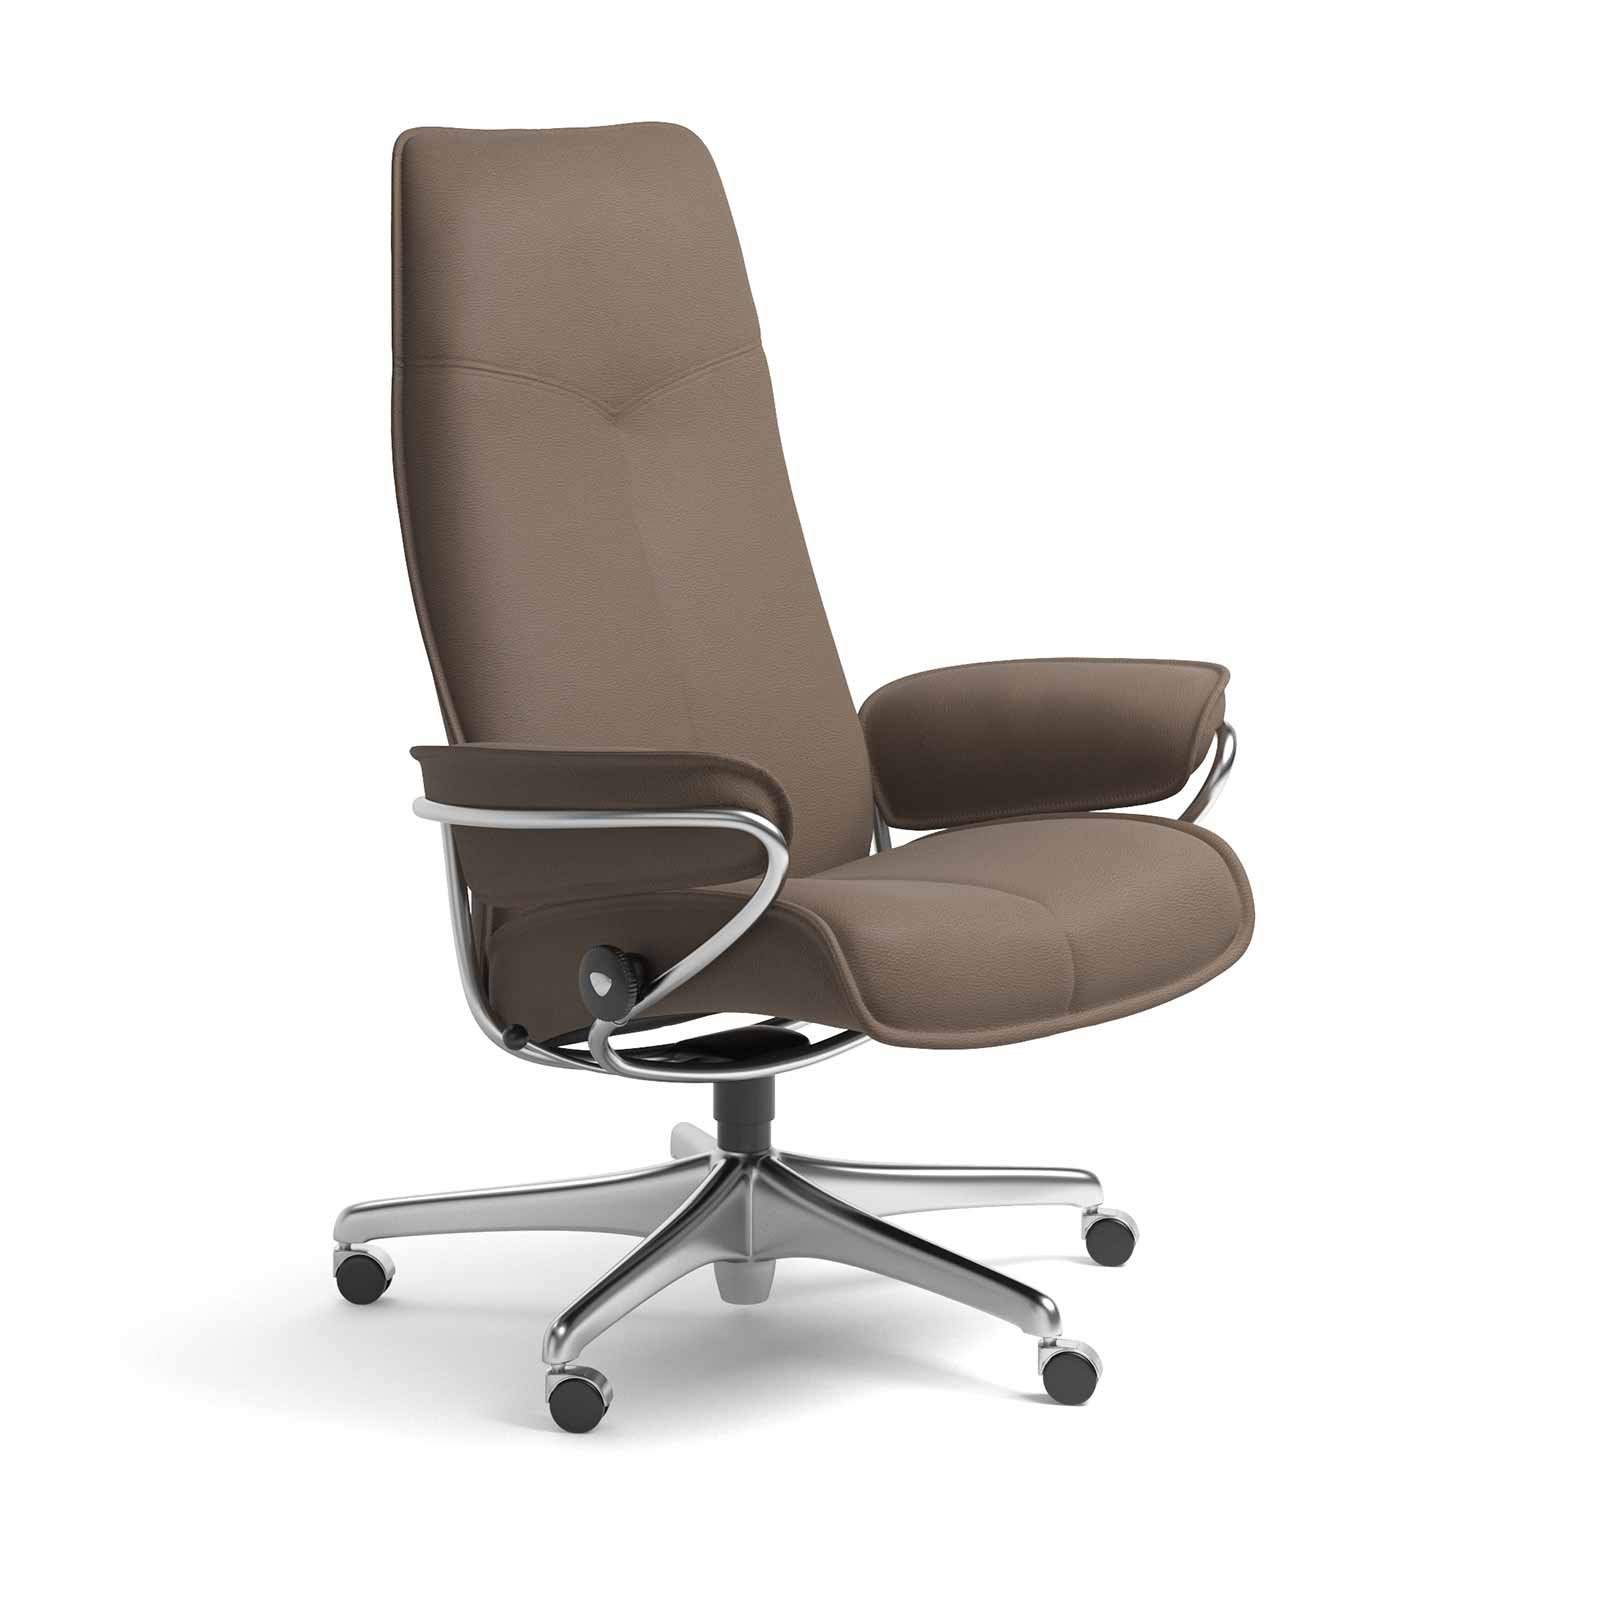 Stressless Sessel City High Back Stressless Sessel Bürostuhl City High Back Batick Mole